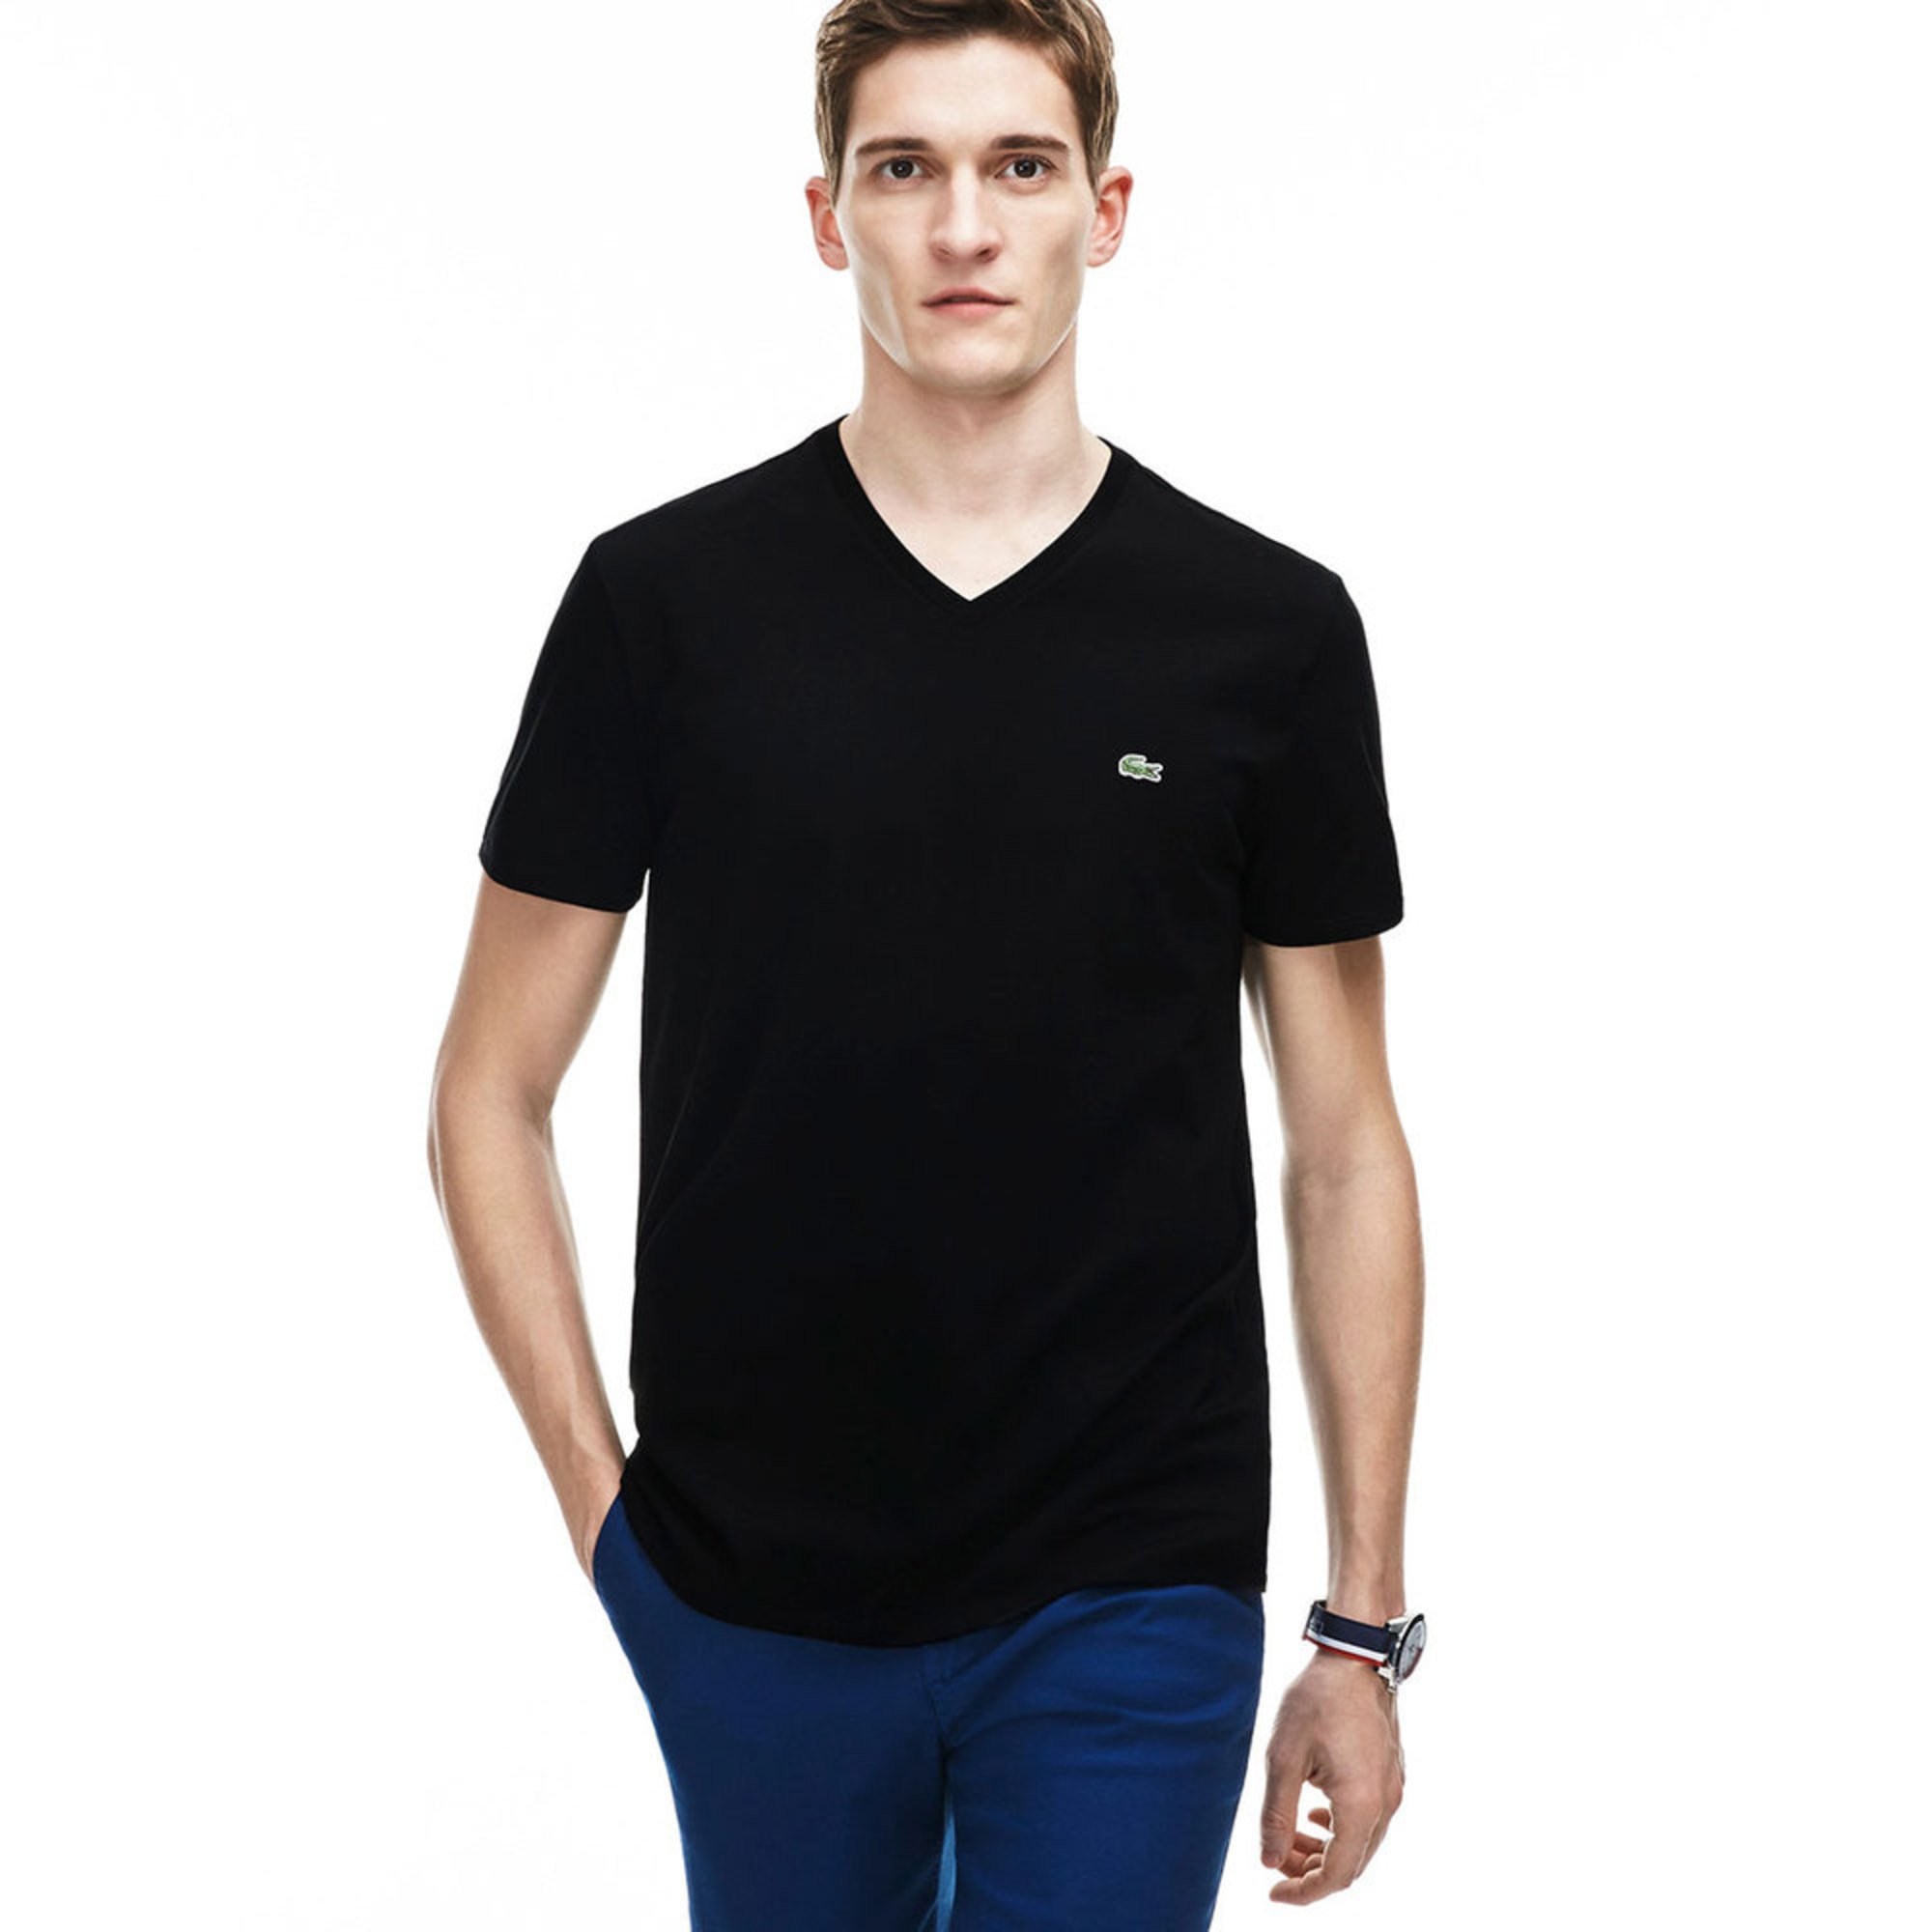 cfd6f468ae5 Lacoste Men's V-neck Tee | Casual & Dress Tees | Apparel - Shop Your ...